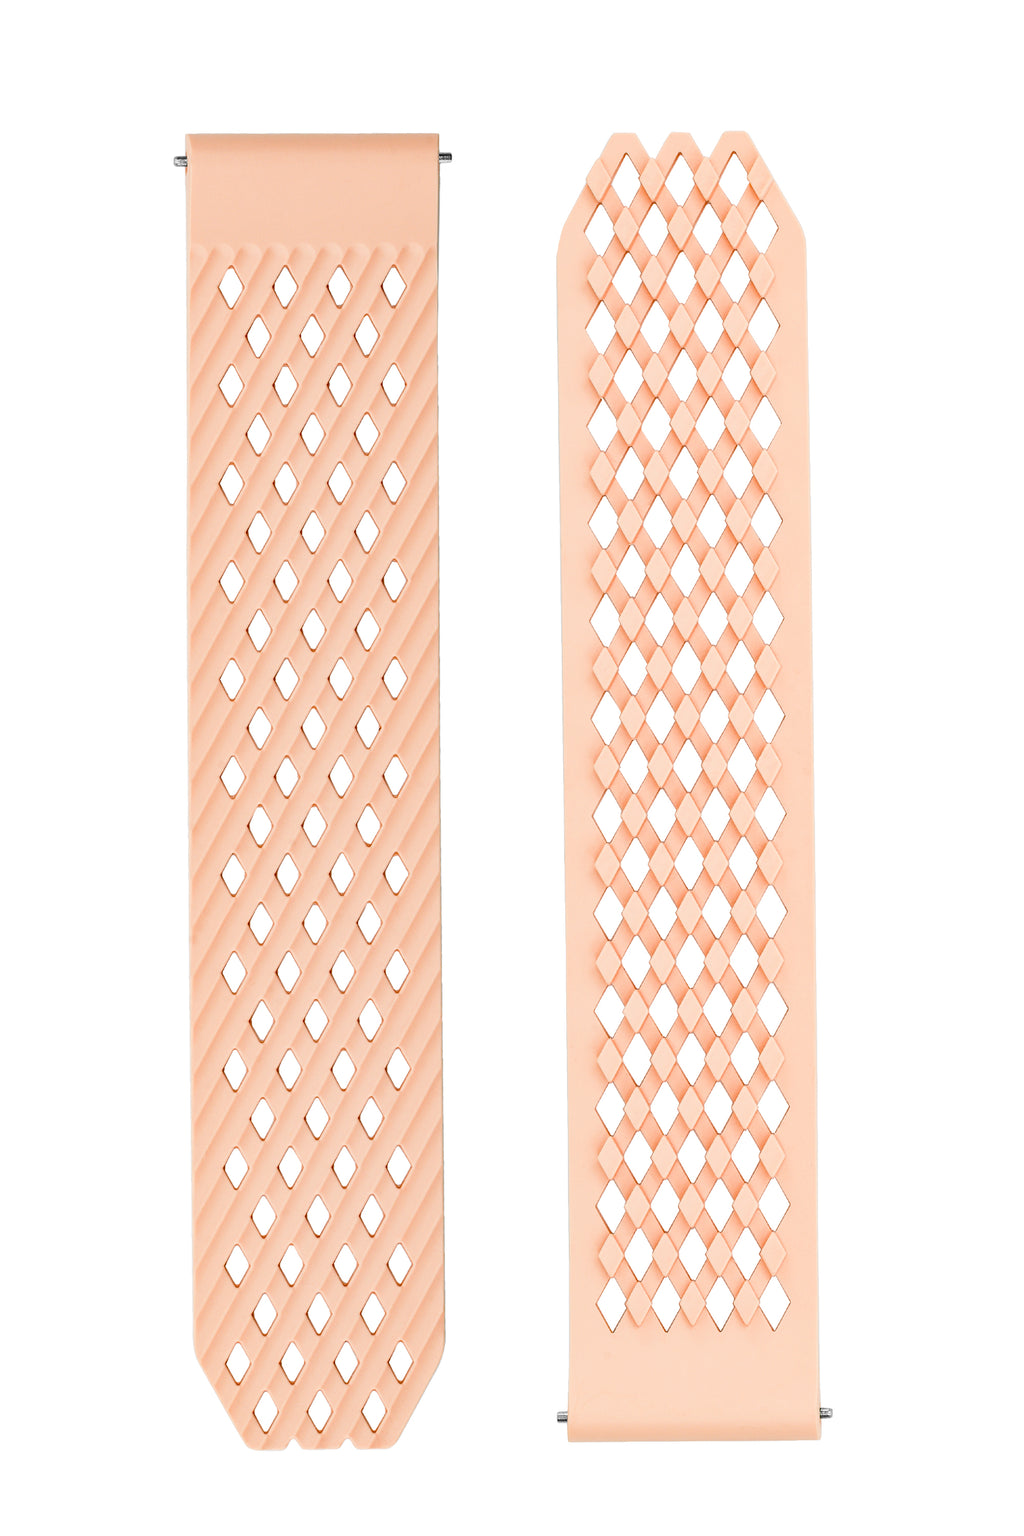 Noomoon LABB Interlocking Quick-Release Watch Strap in NUDE